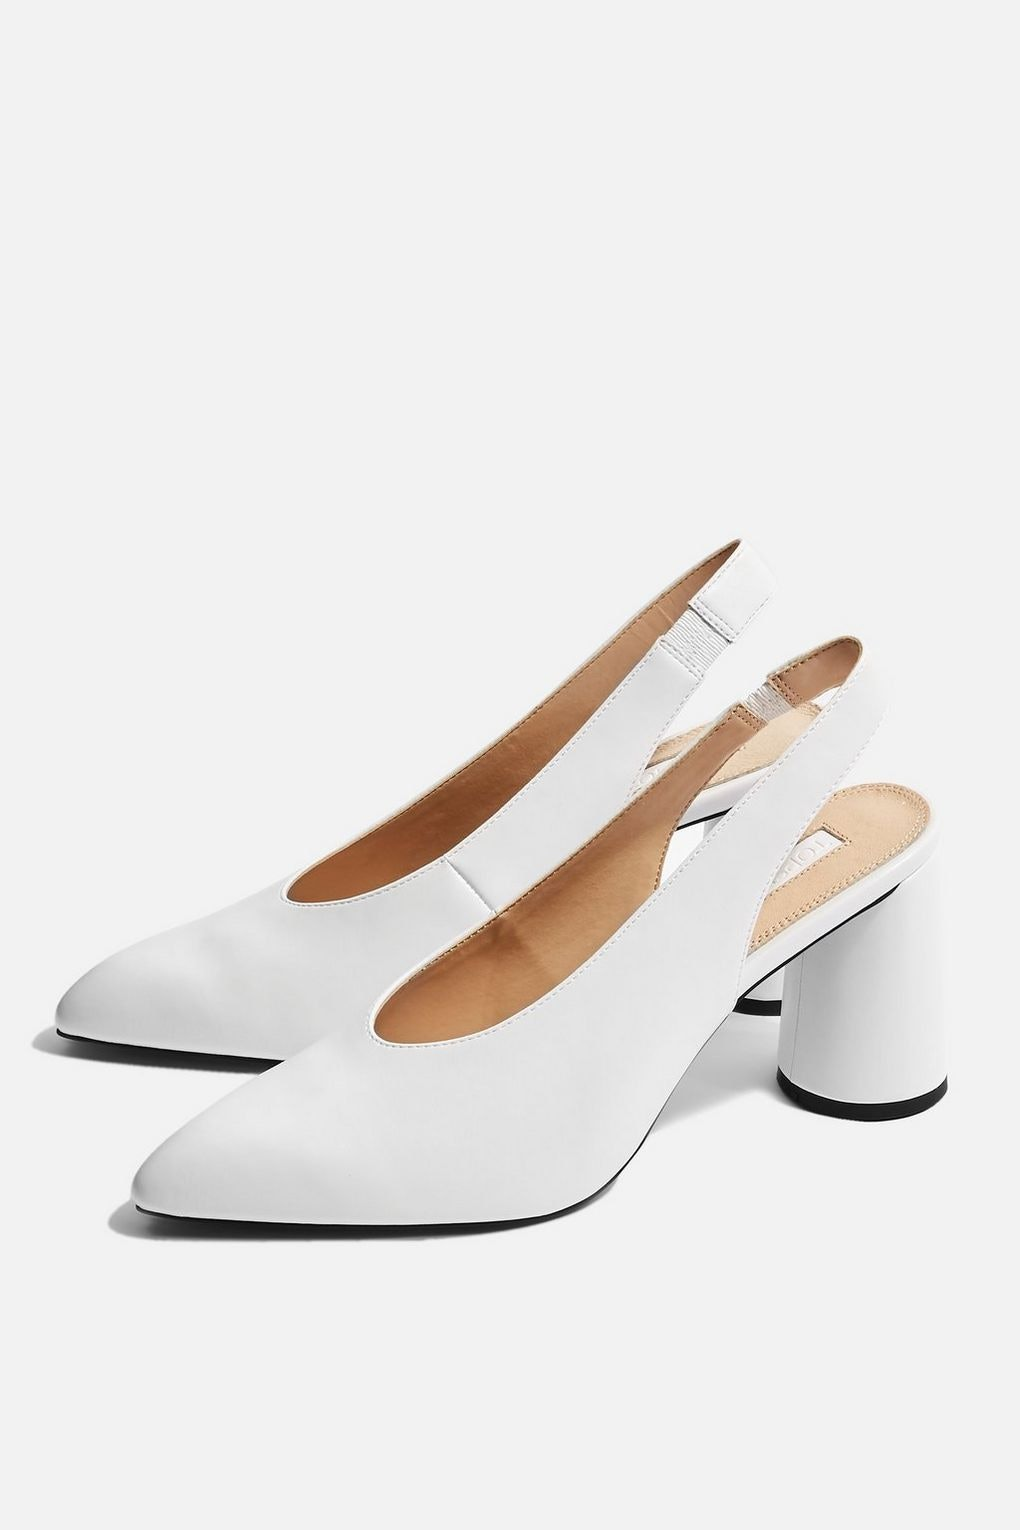 32f83bc9f8f These White Summer Shoes Will Give Your Summer Style The Ultimate Refresh